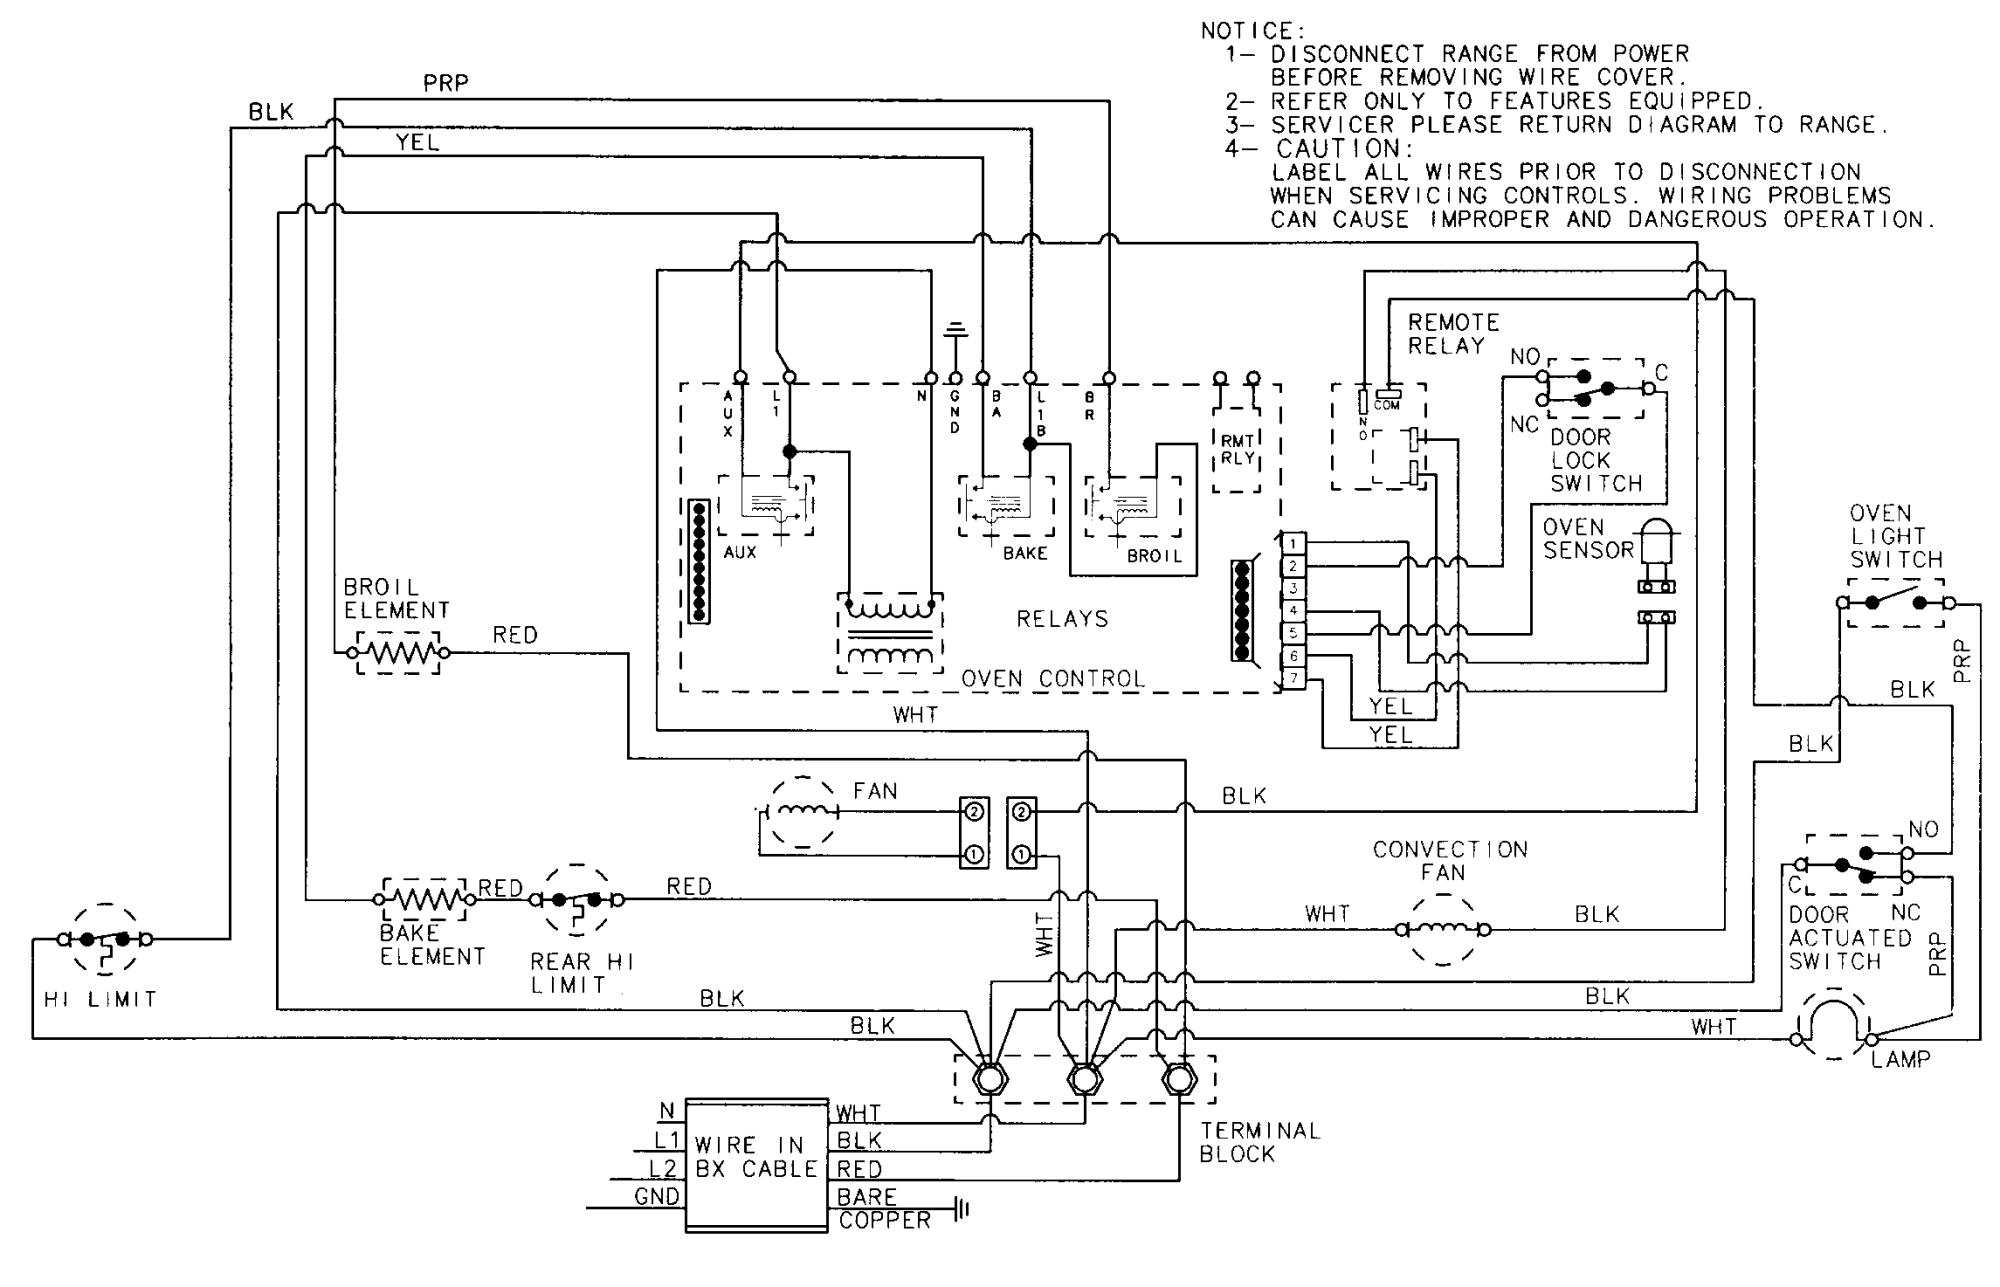 hight resolution of maytag cwe9030bcb timer stove clocks and appliance timerscwe9030bcb range wiring information parts diagram